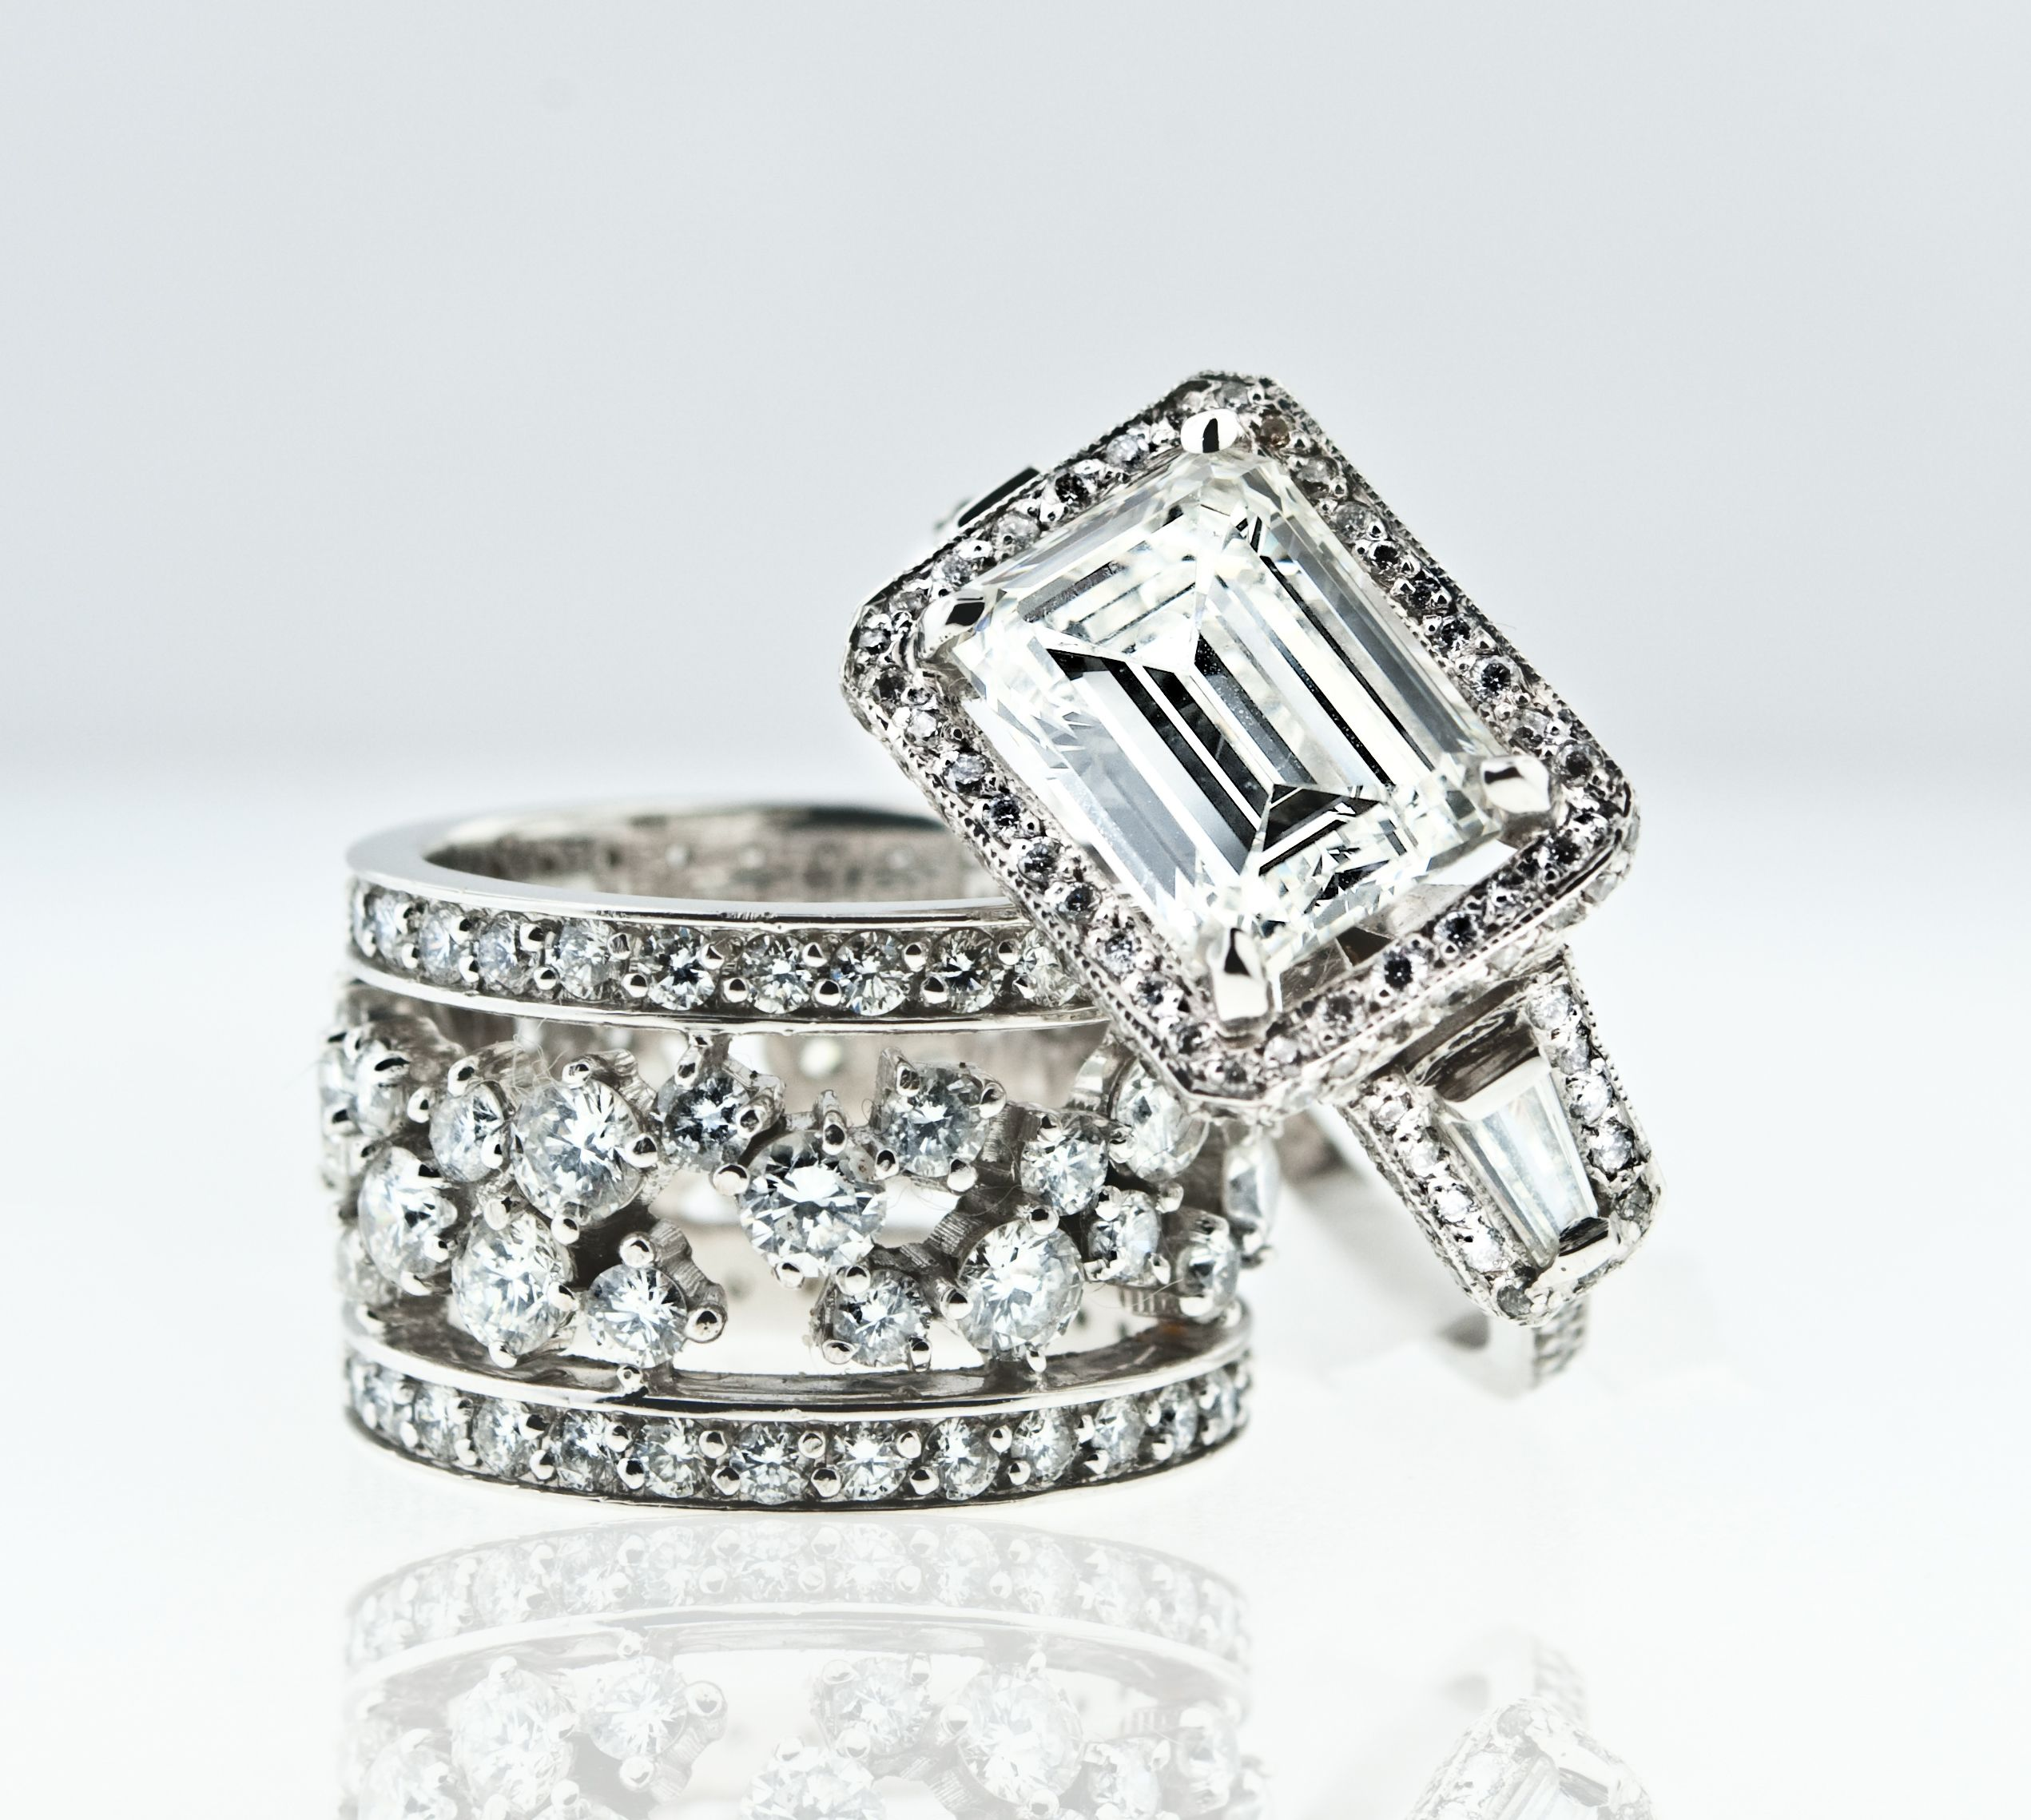 engagement jewellery me dousset jewelers ring near diamonds custom francesca jean